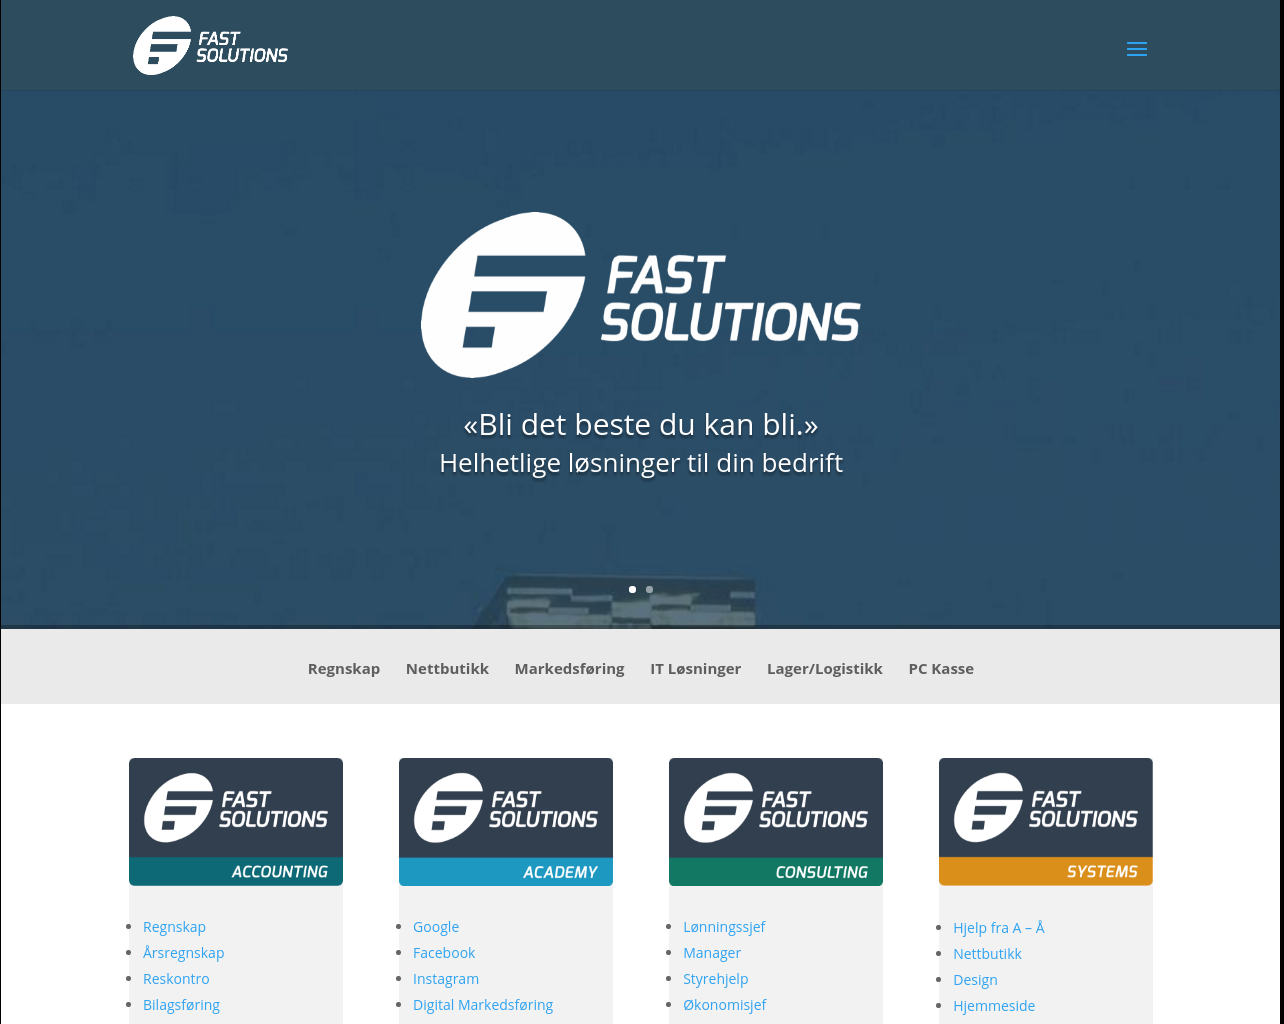 fastsolutions.no presentation